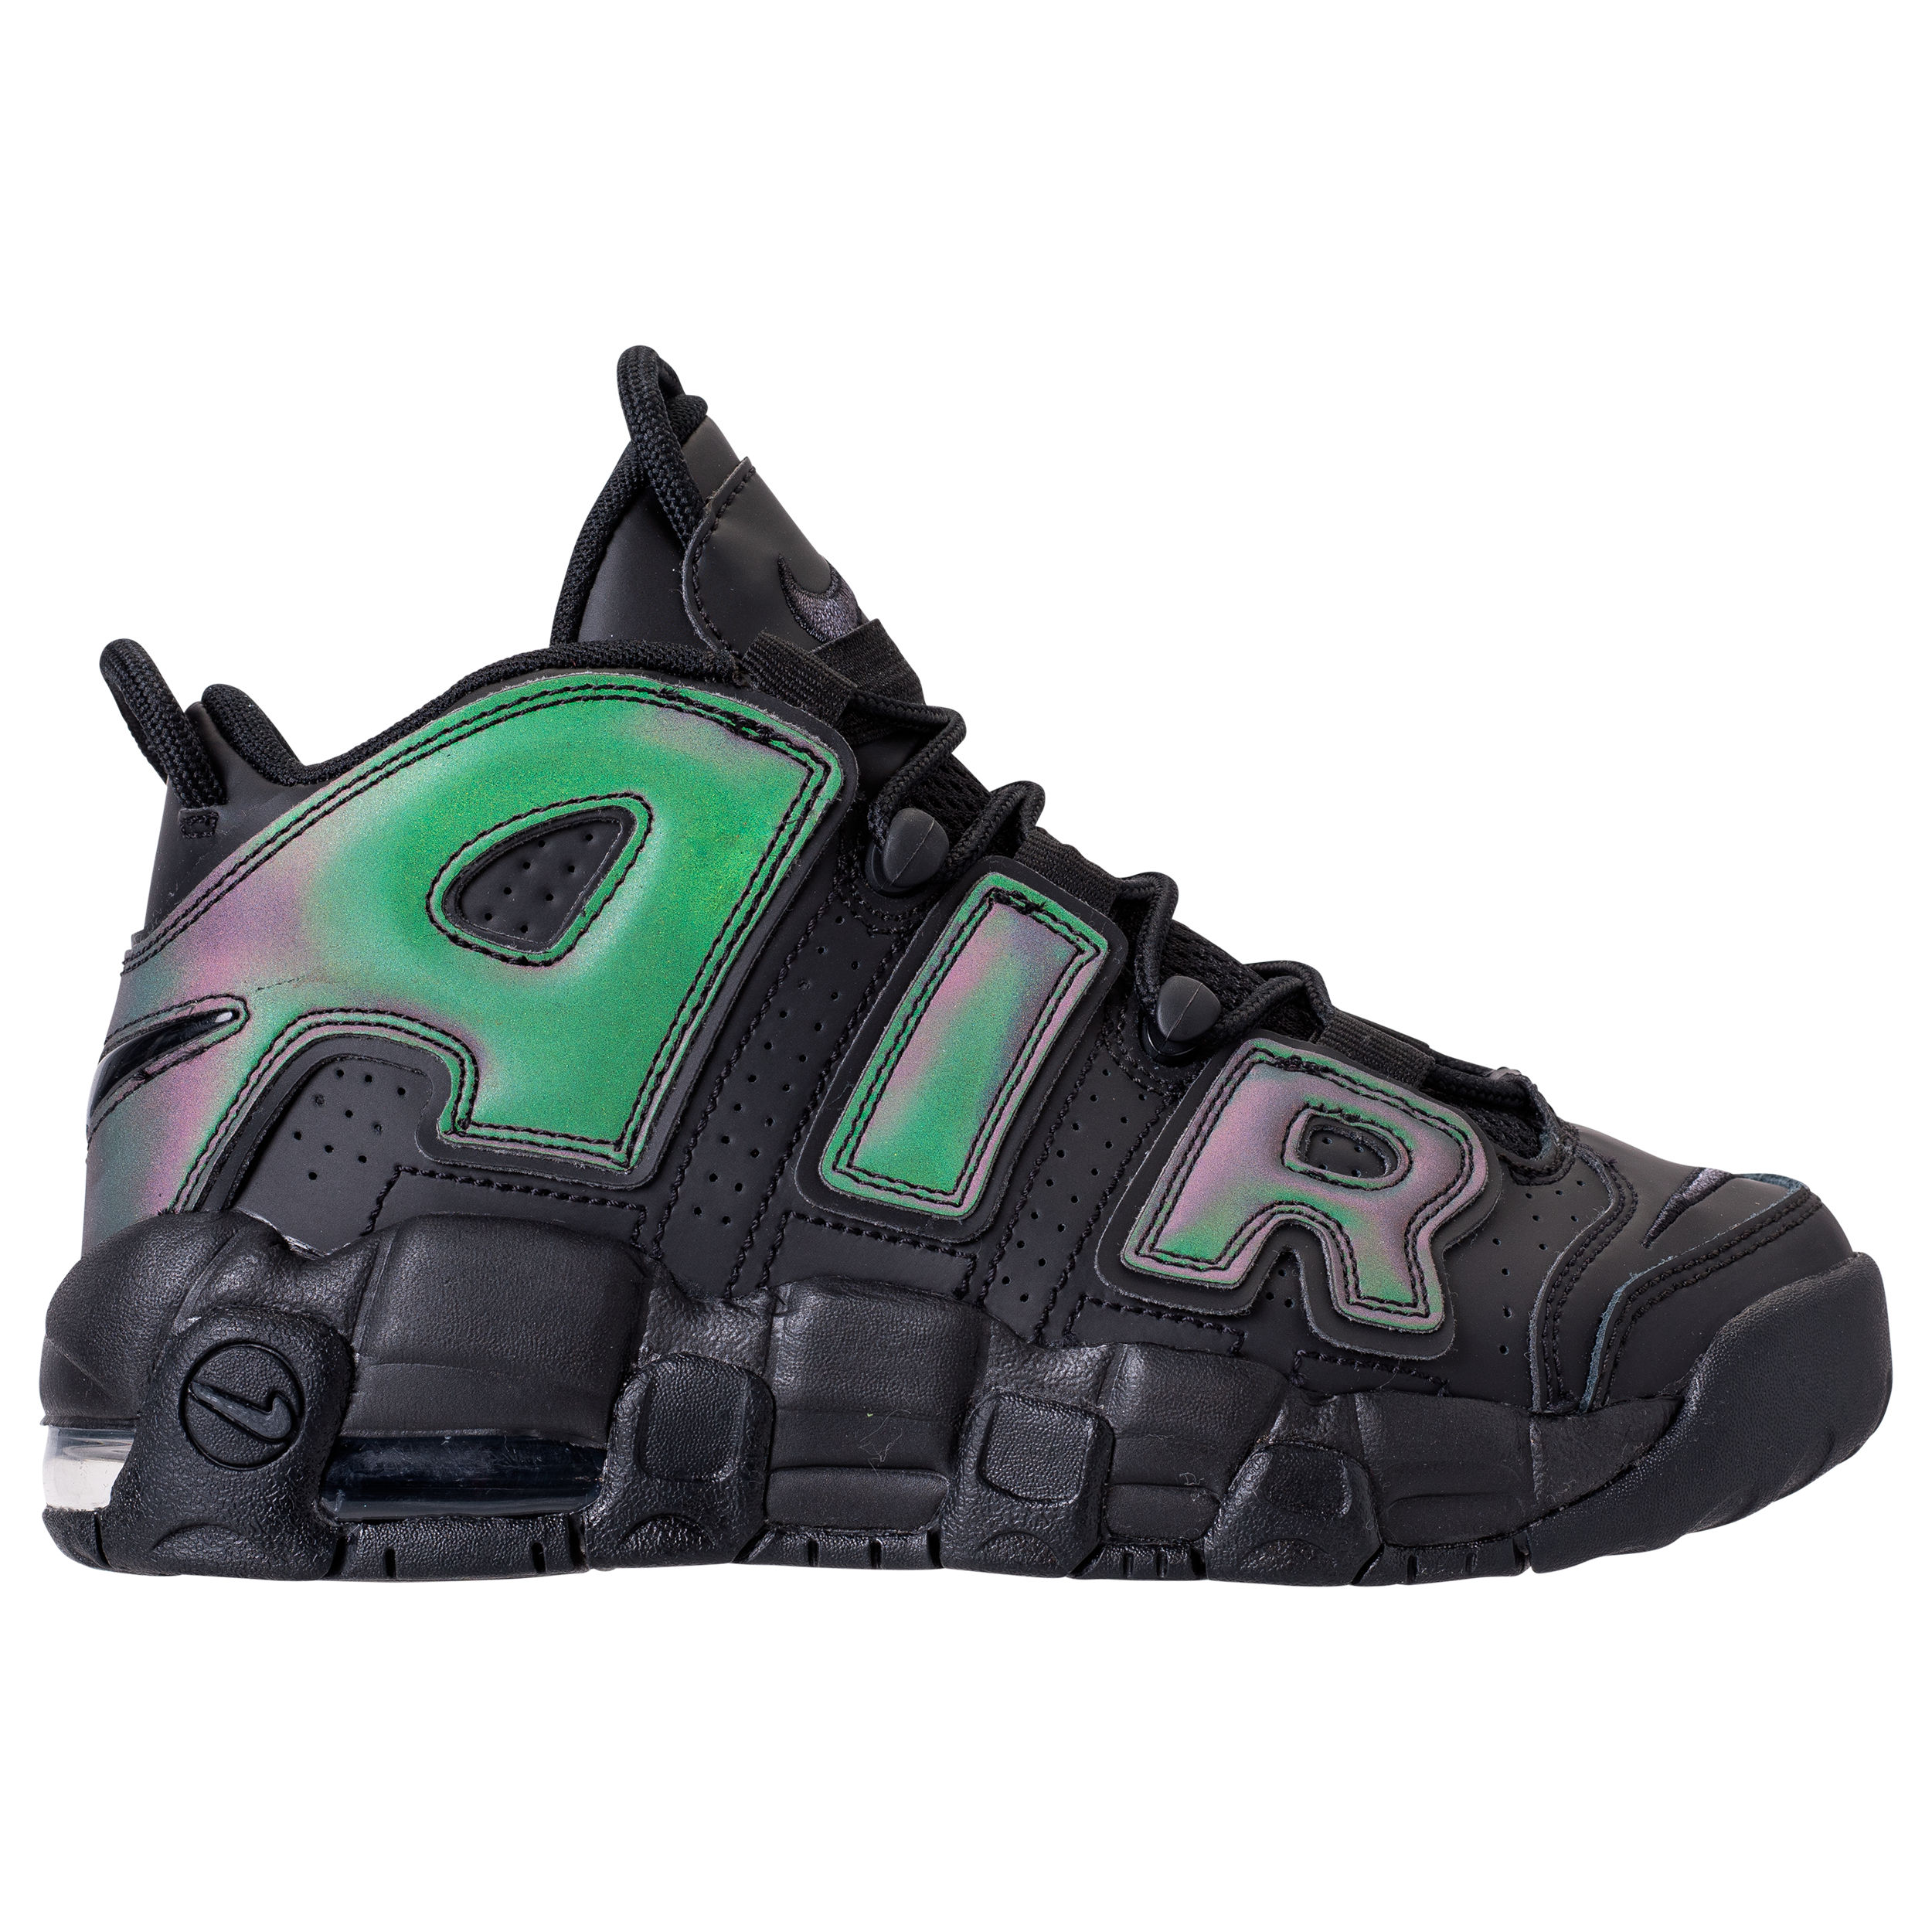 The Reflective and Iridescent Air More Uptempo is Launching